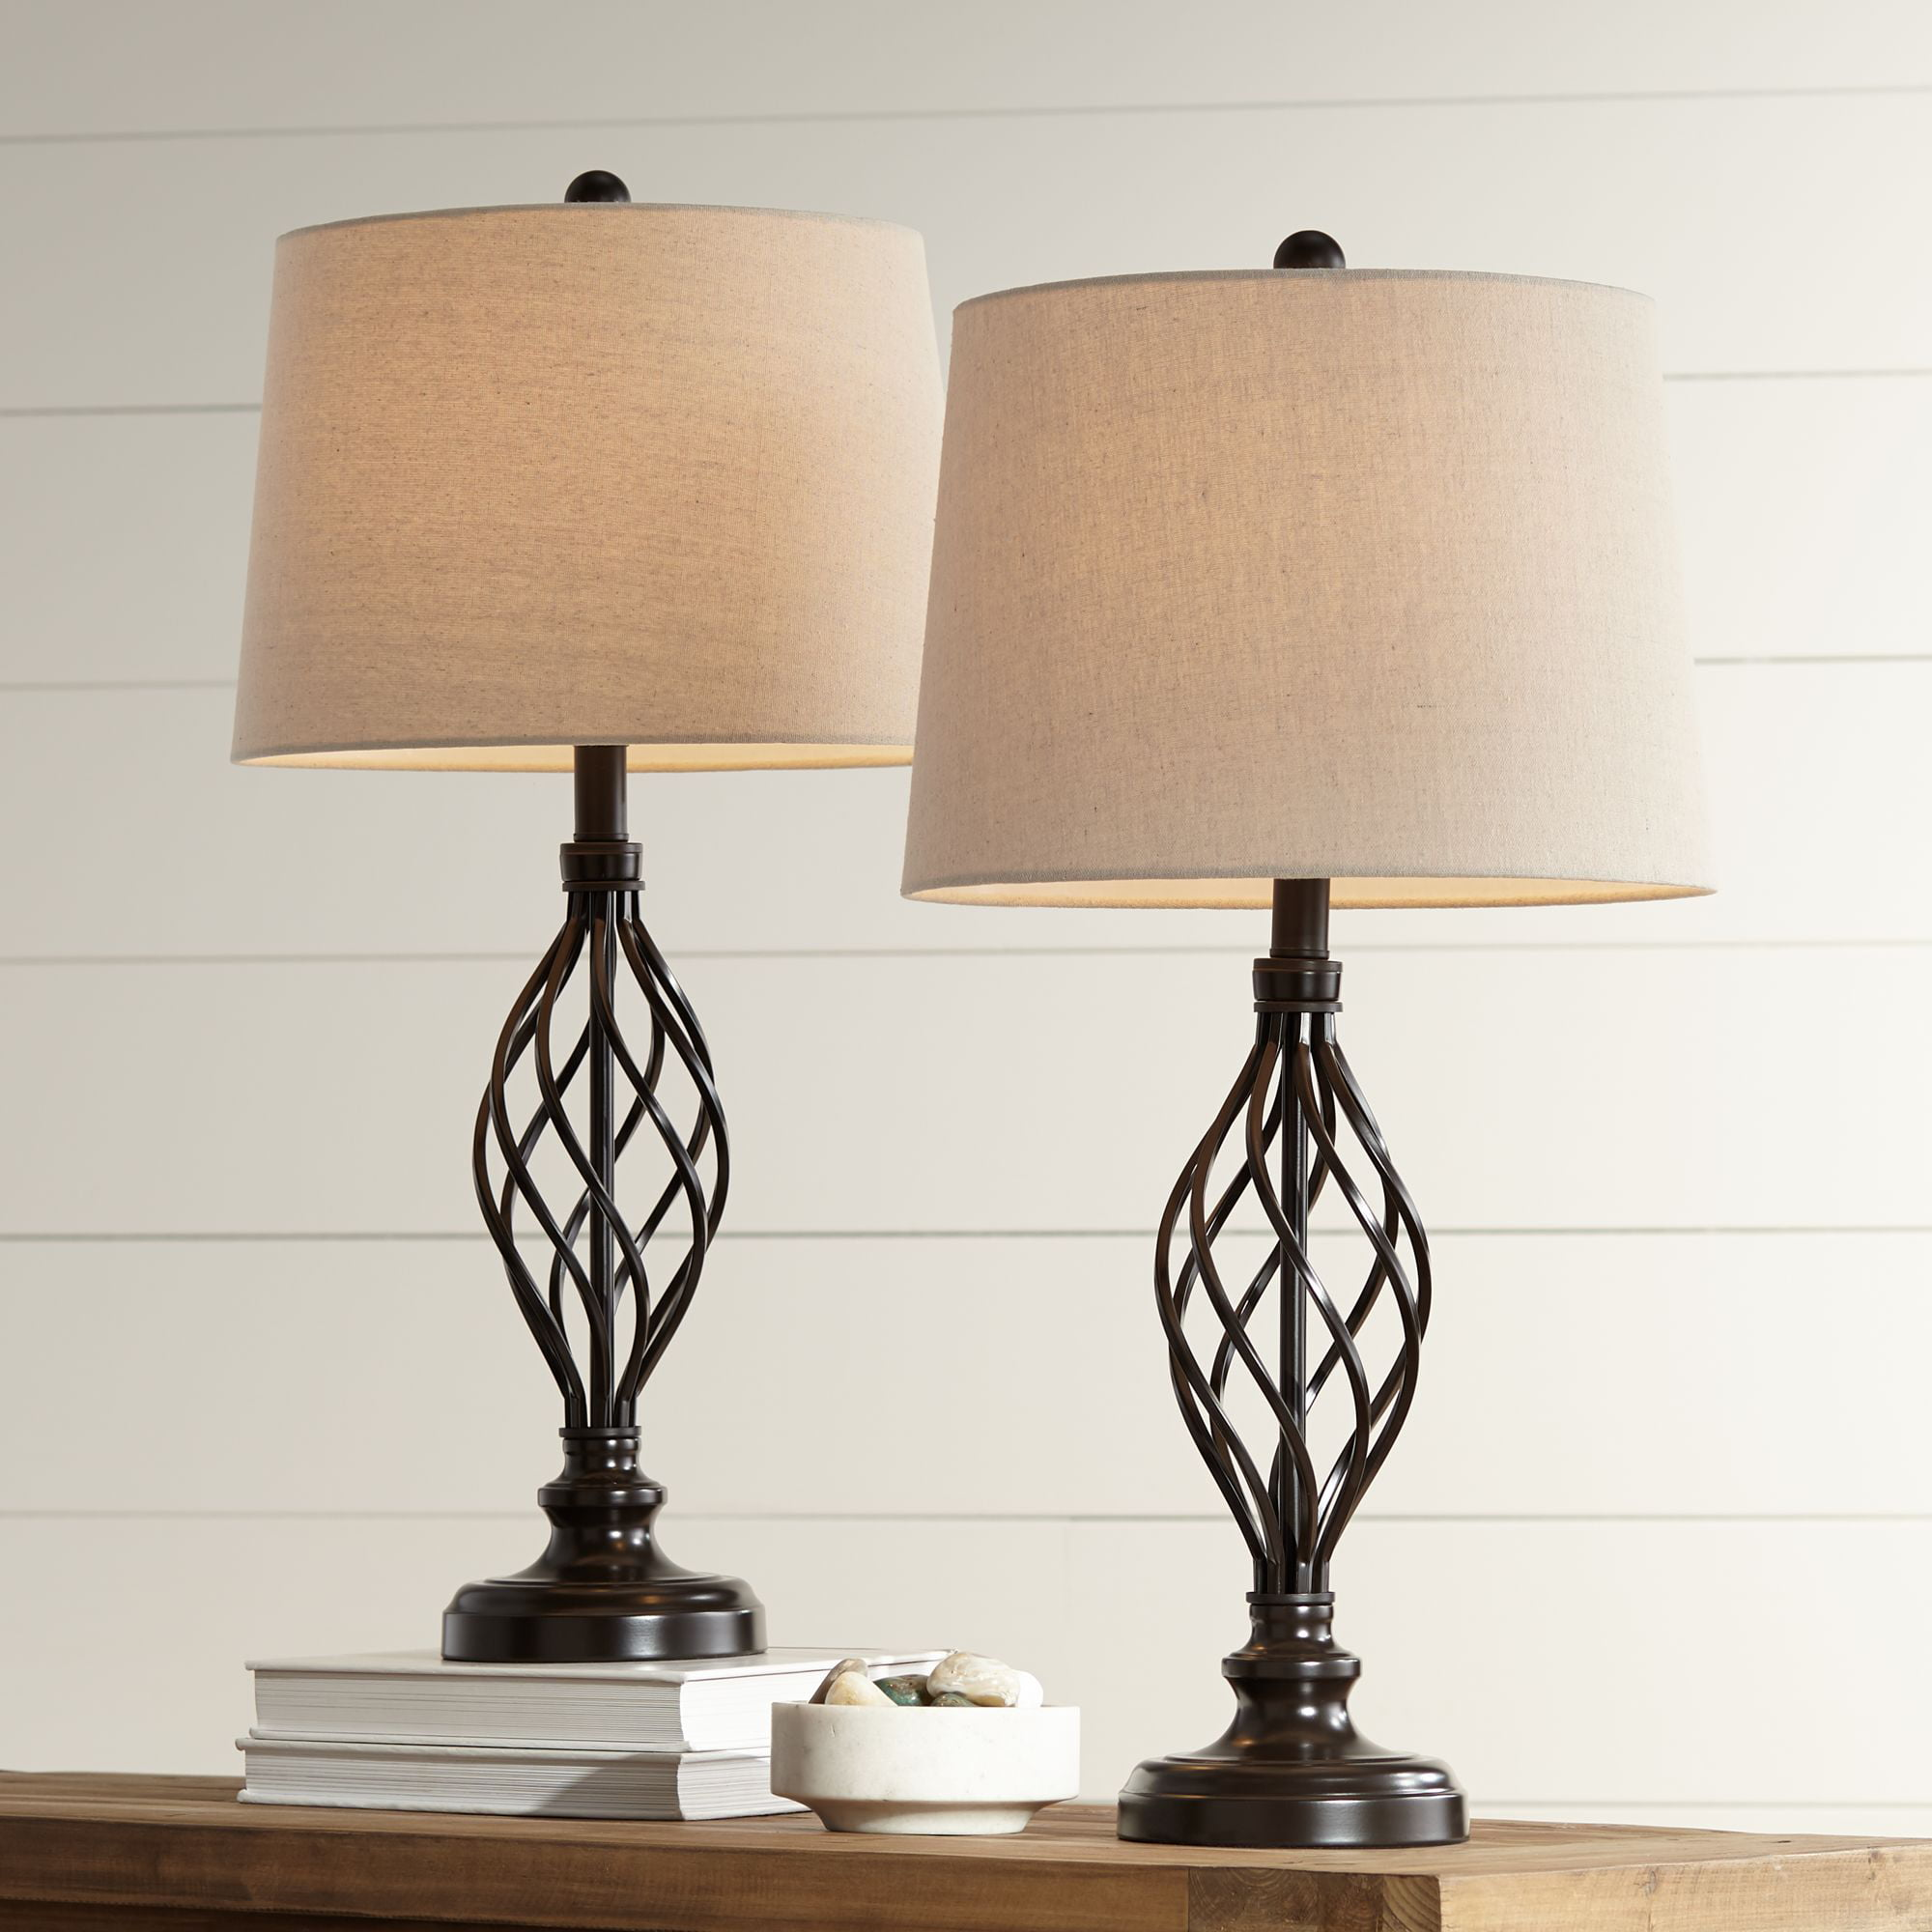 Franklin Iron Works Traditional Table Lamps Set of 2 Bronze Iron Scroll  Tapered Cream Drum Shade for Living Room Family Bedroom - Walmart.com